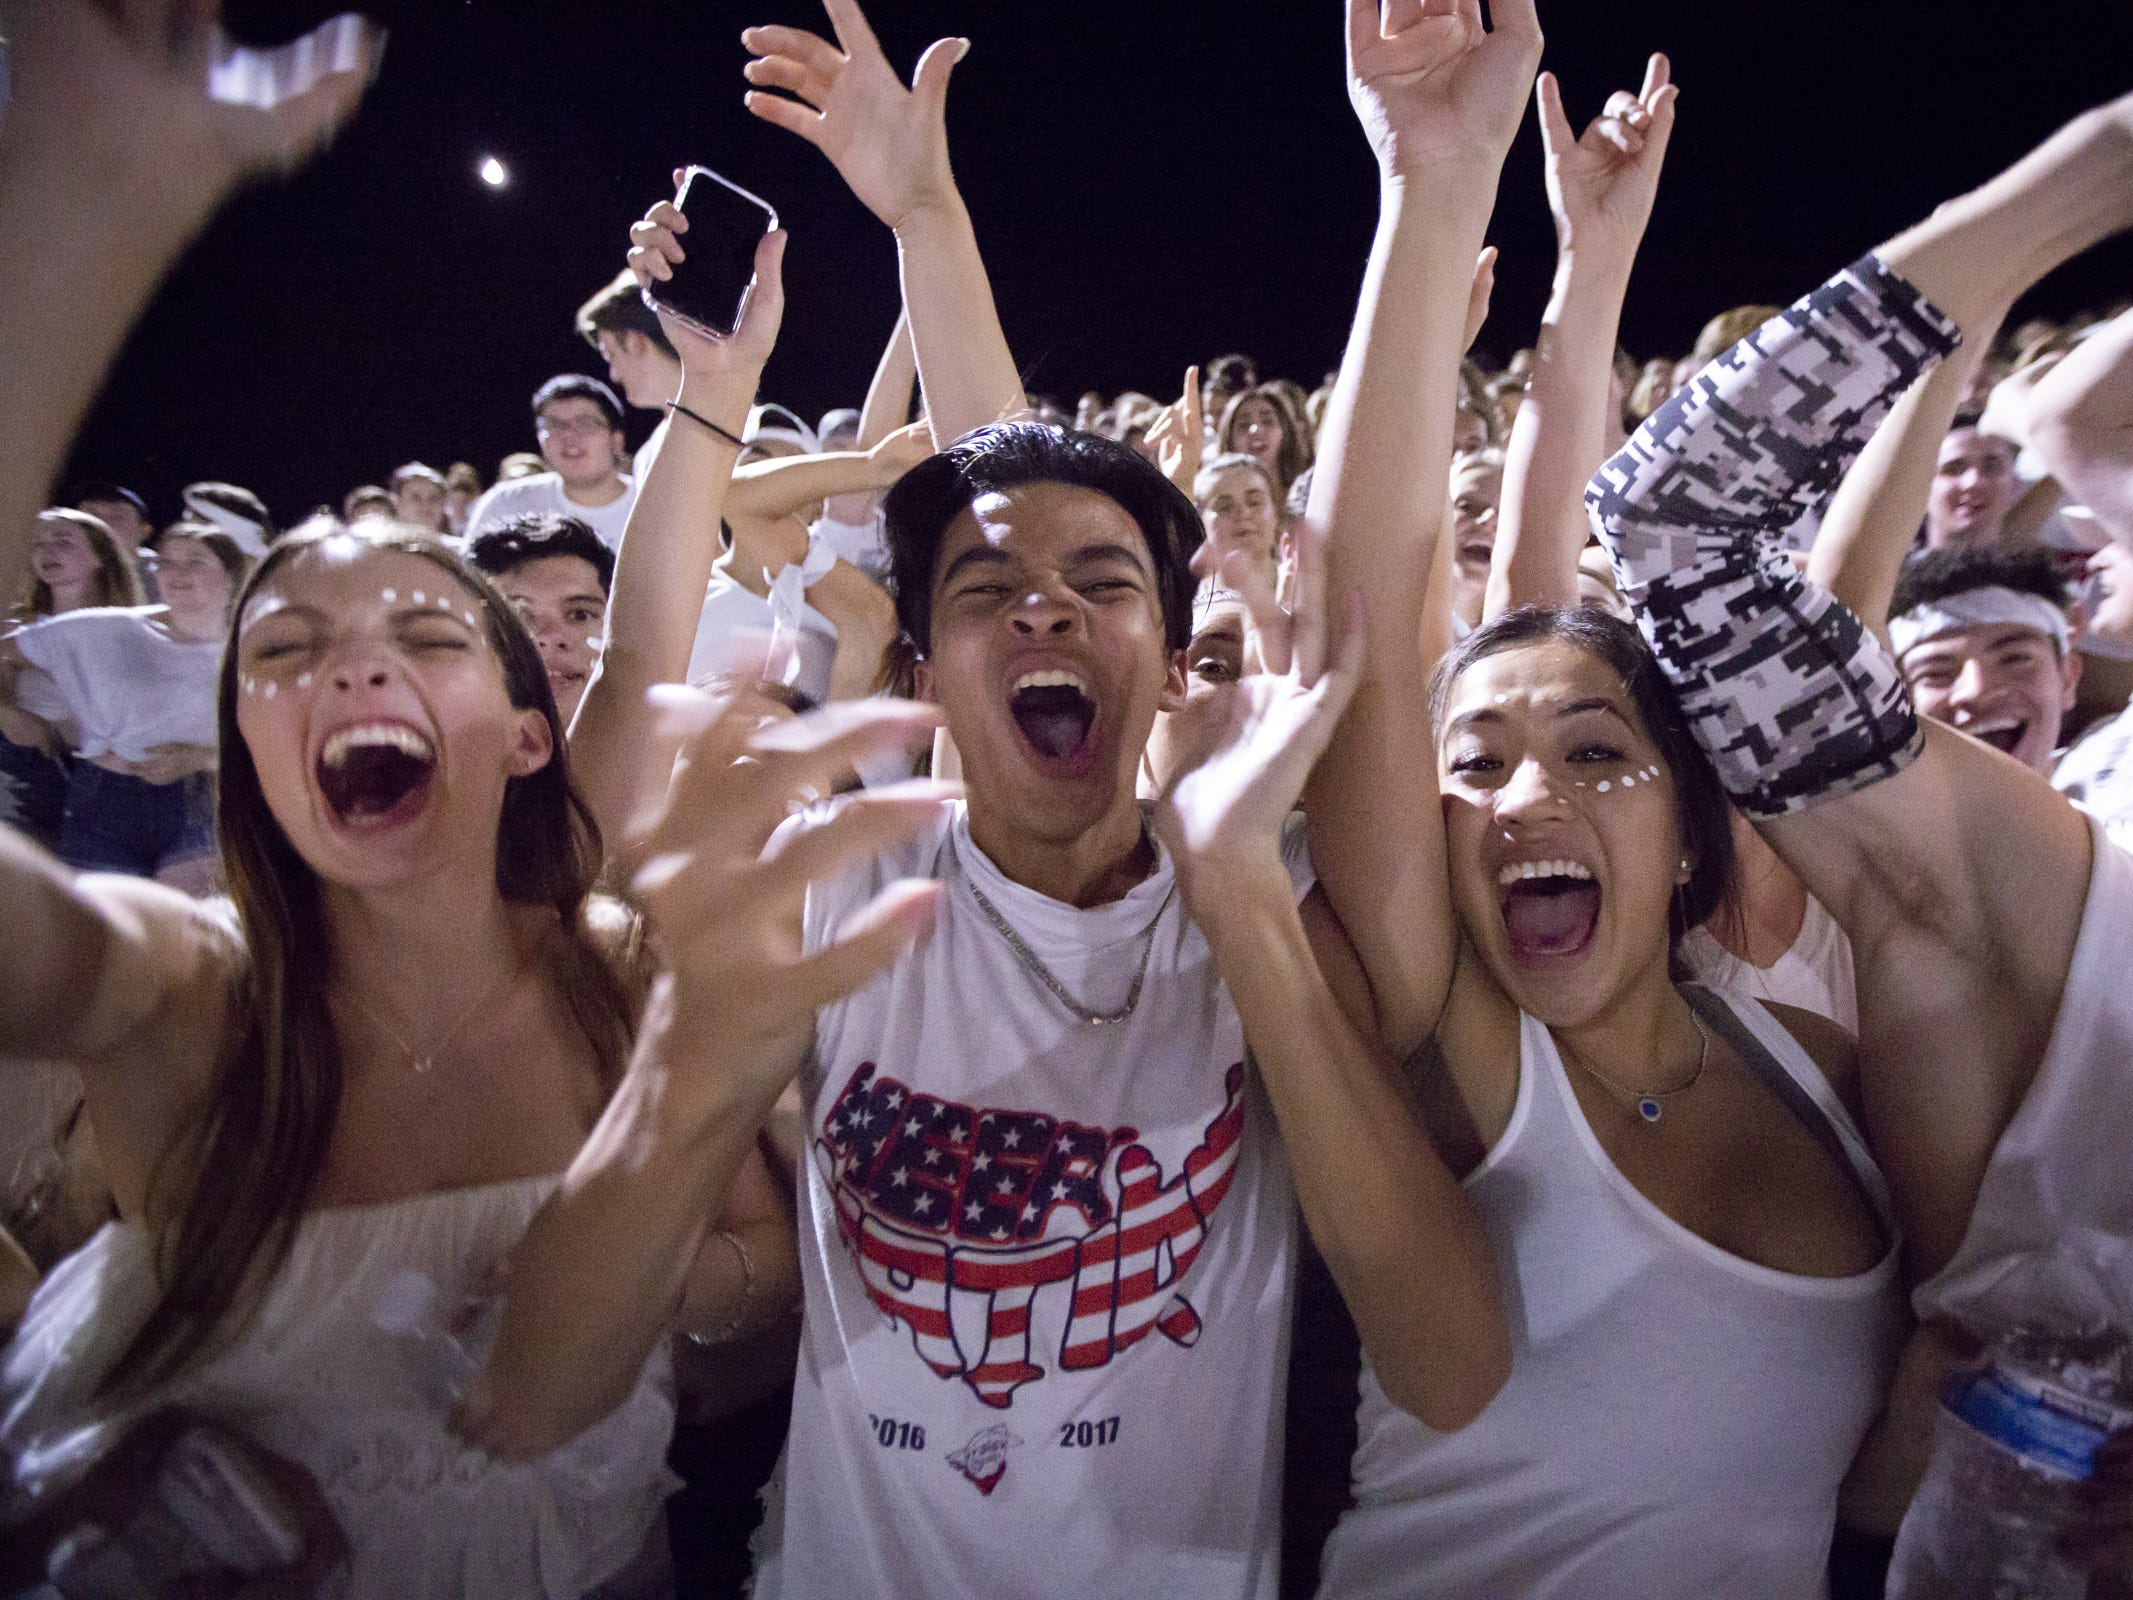 Pinnacle fans cheer during the game against the Perry Pumas at Pinnacle High School on Friday, August 17, 2018 in Phoenix, Arizona.